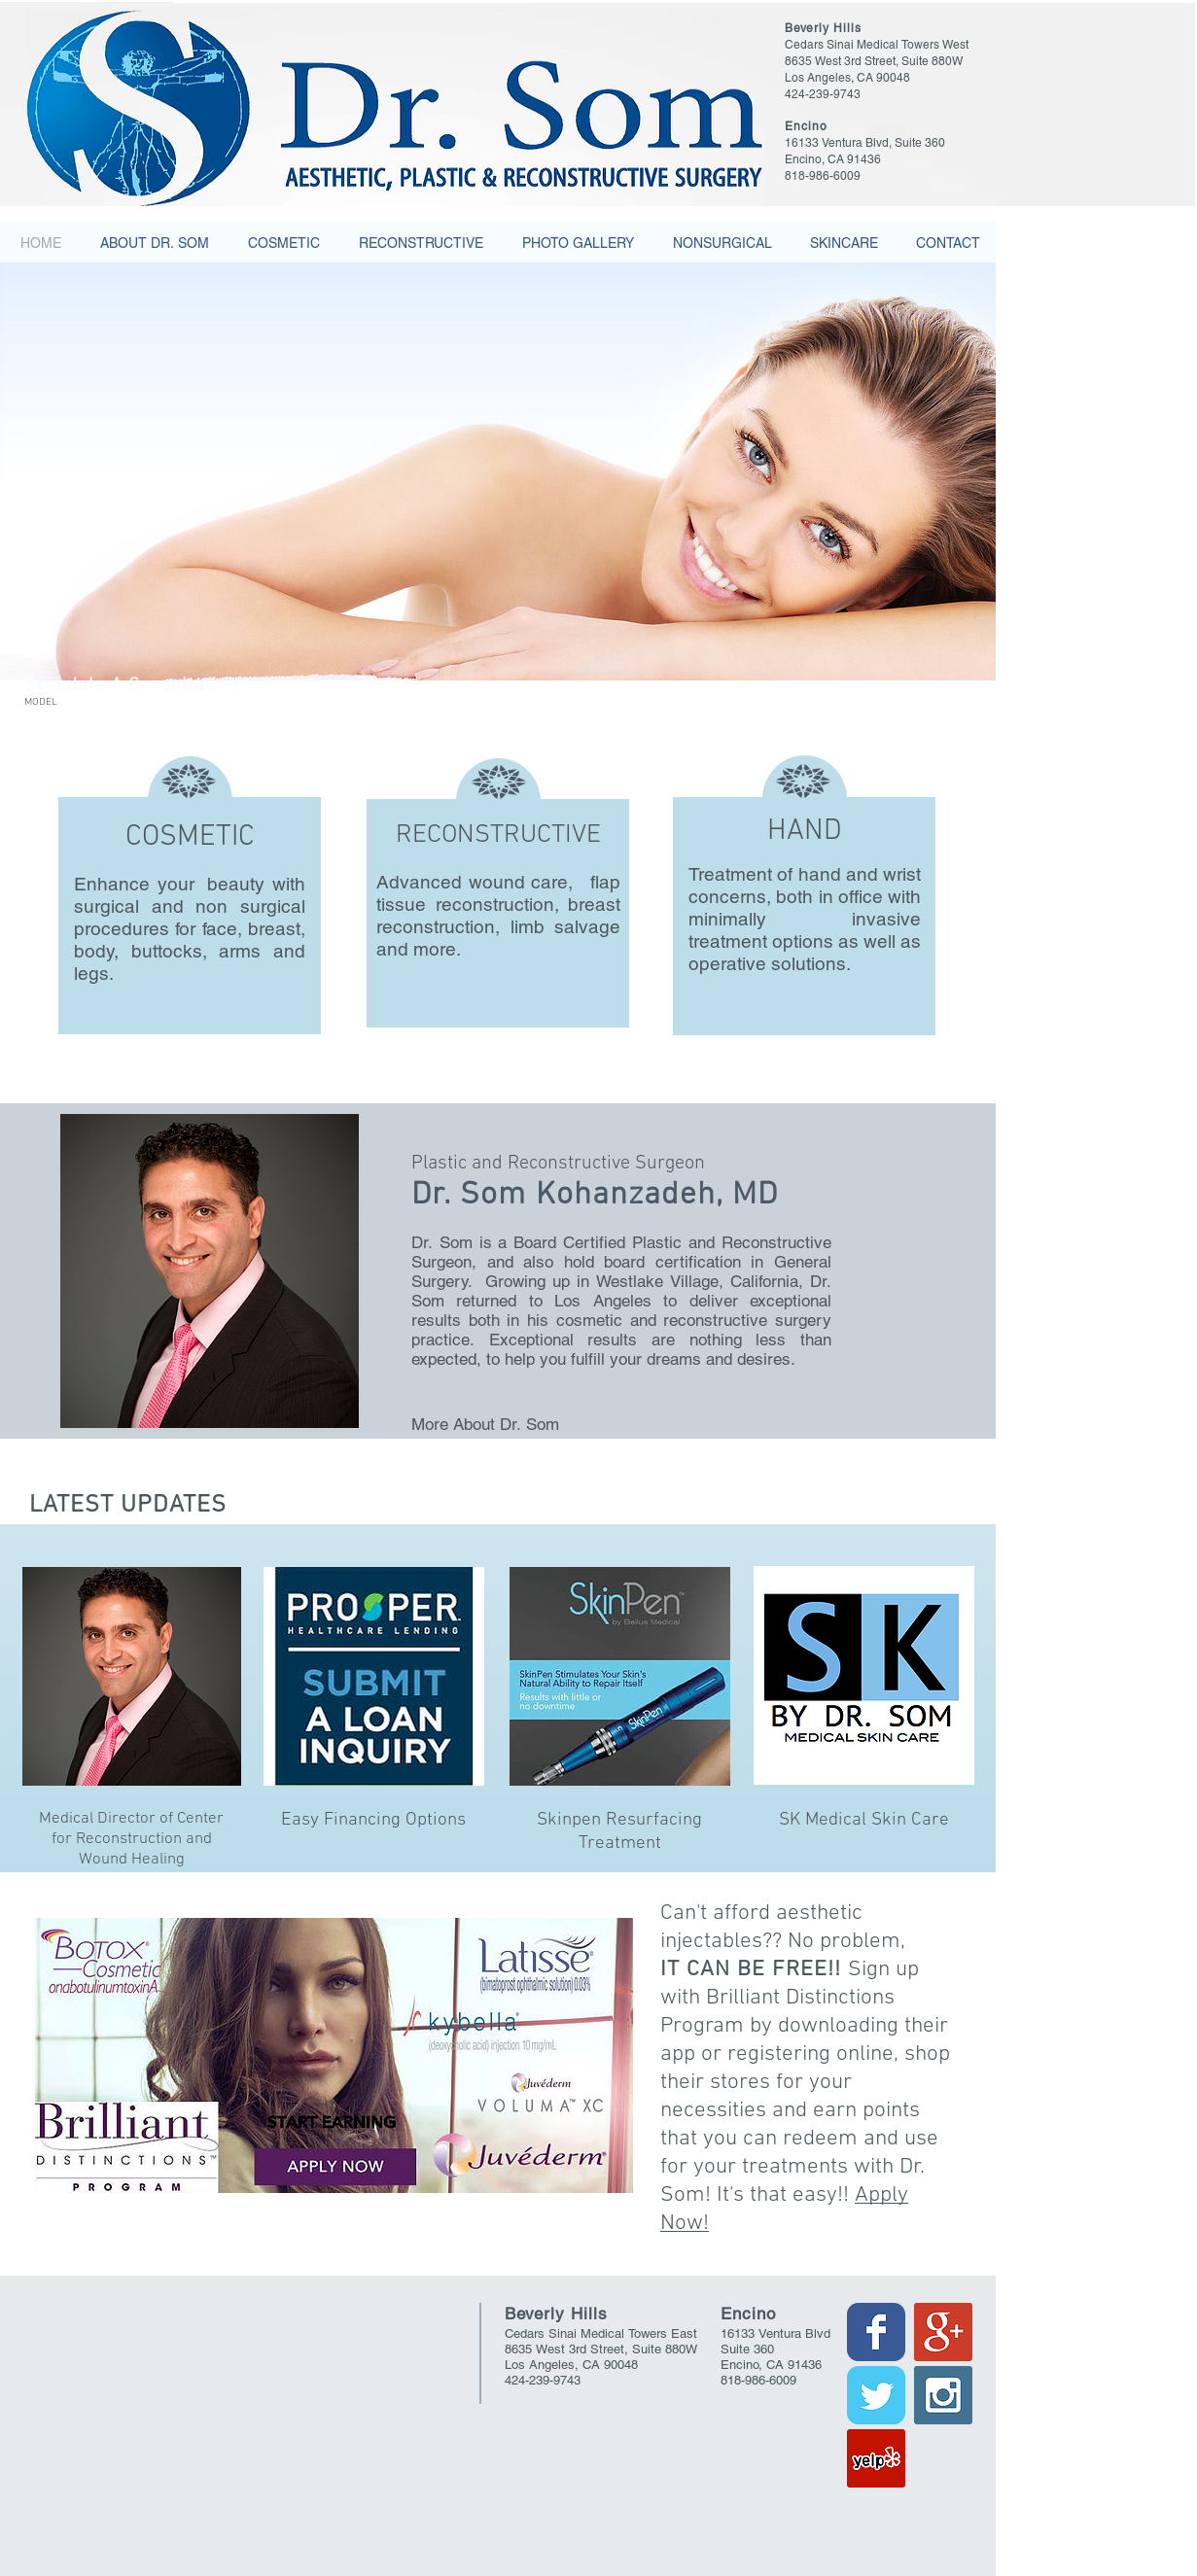 Som K Plastic Surgery Competitors, Revenue and Employees